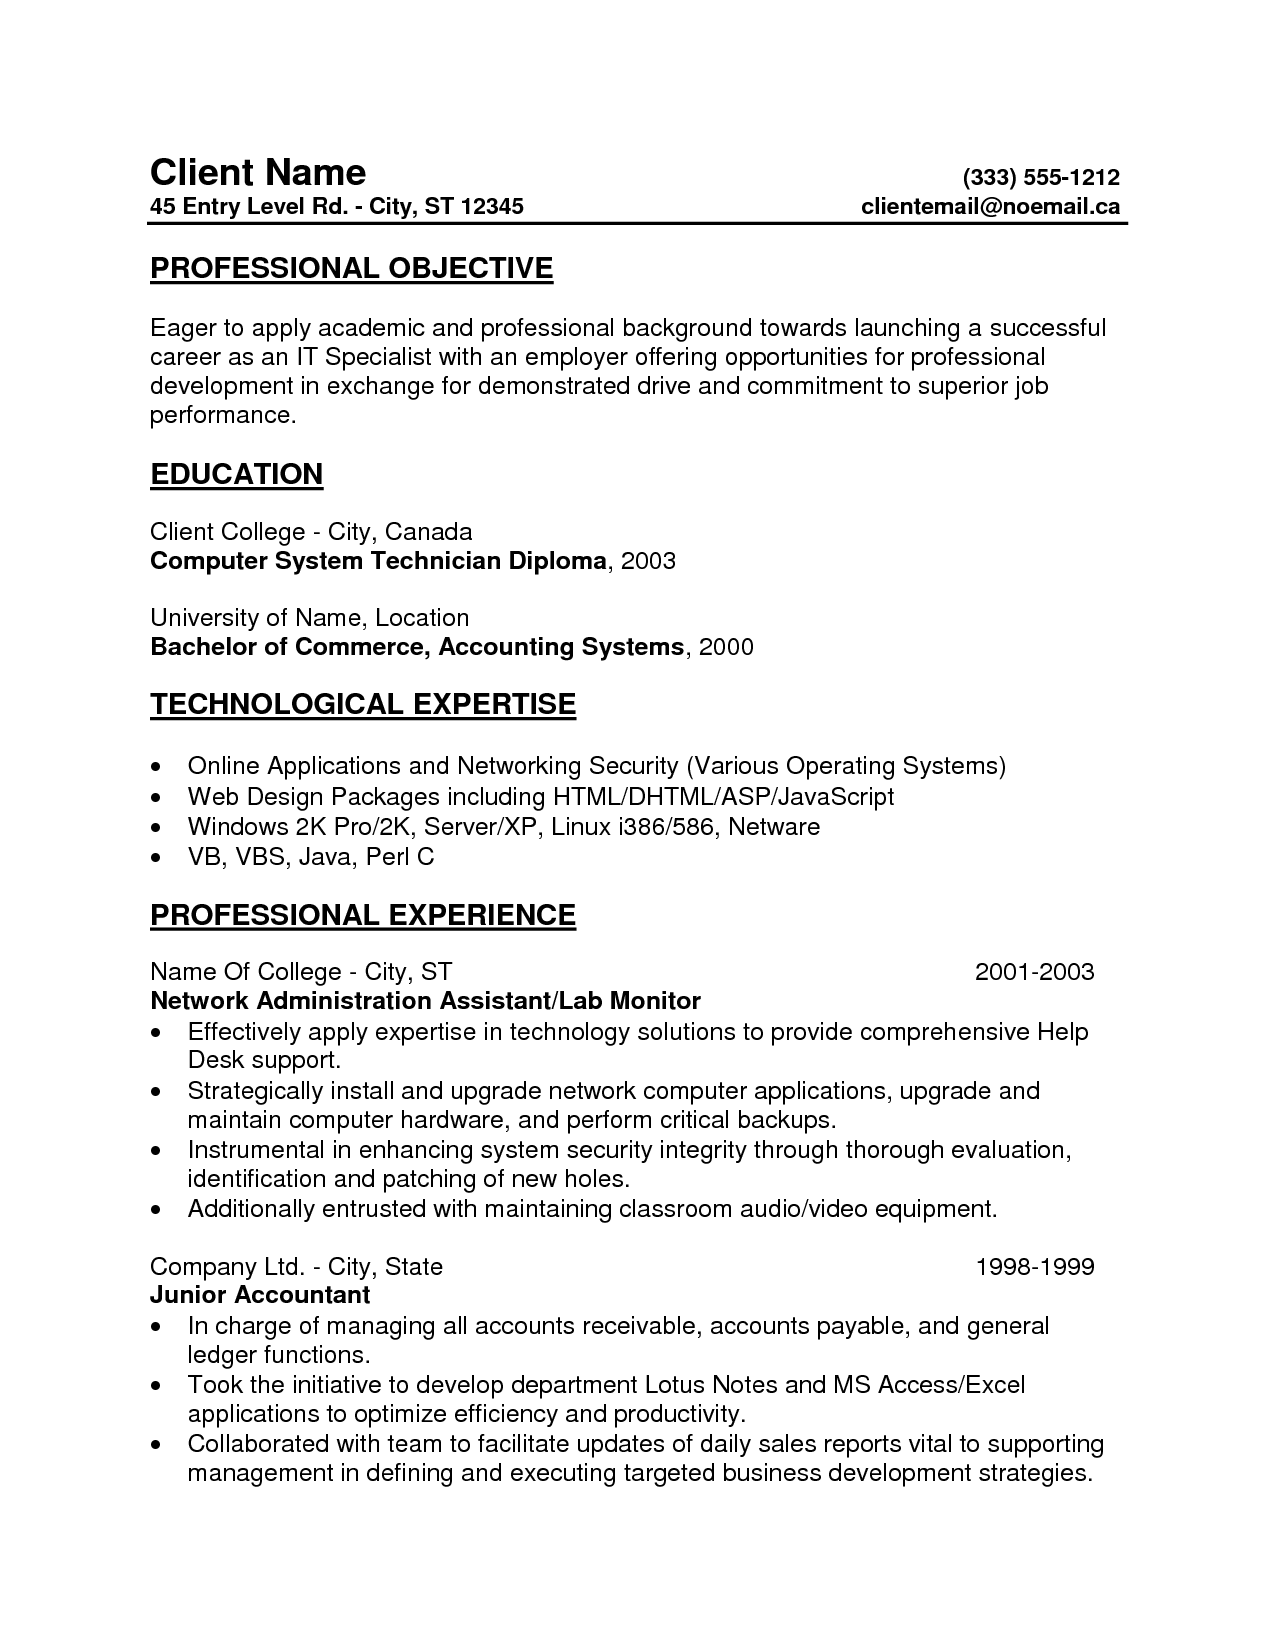 resume objective statements for healthcare